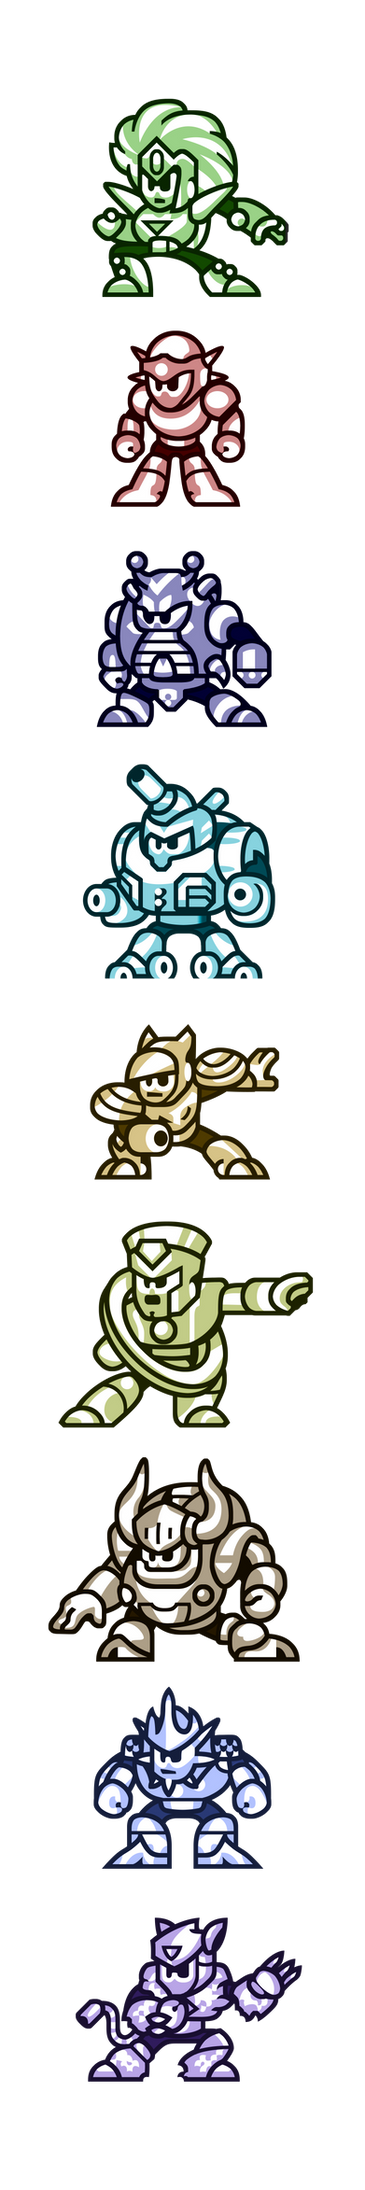 "Megaman""Sprites""-Bosses of V by WaneBlade"